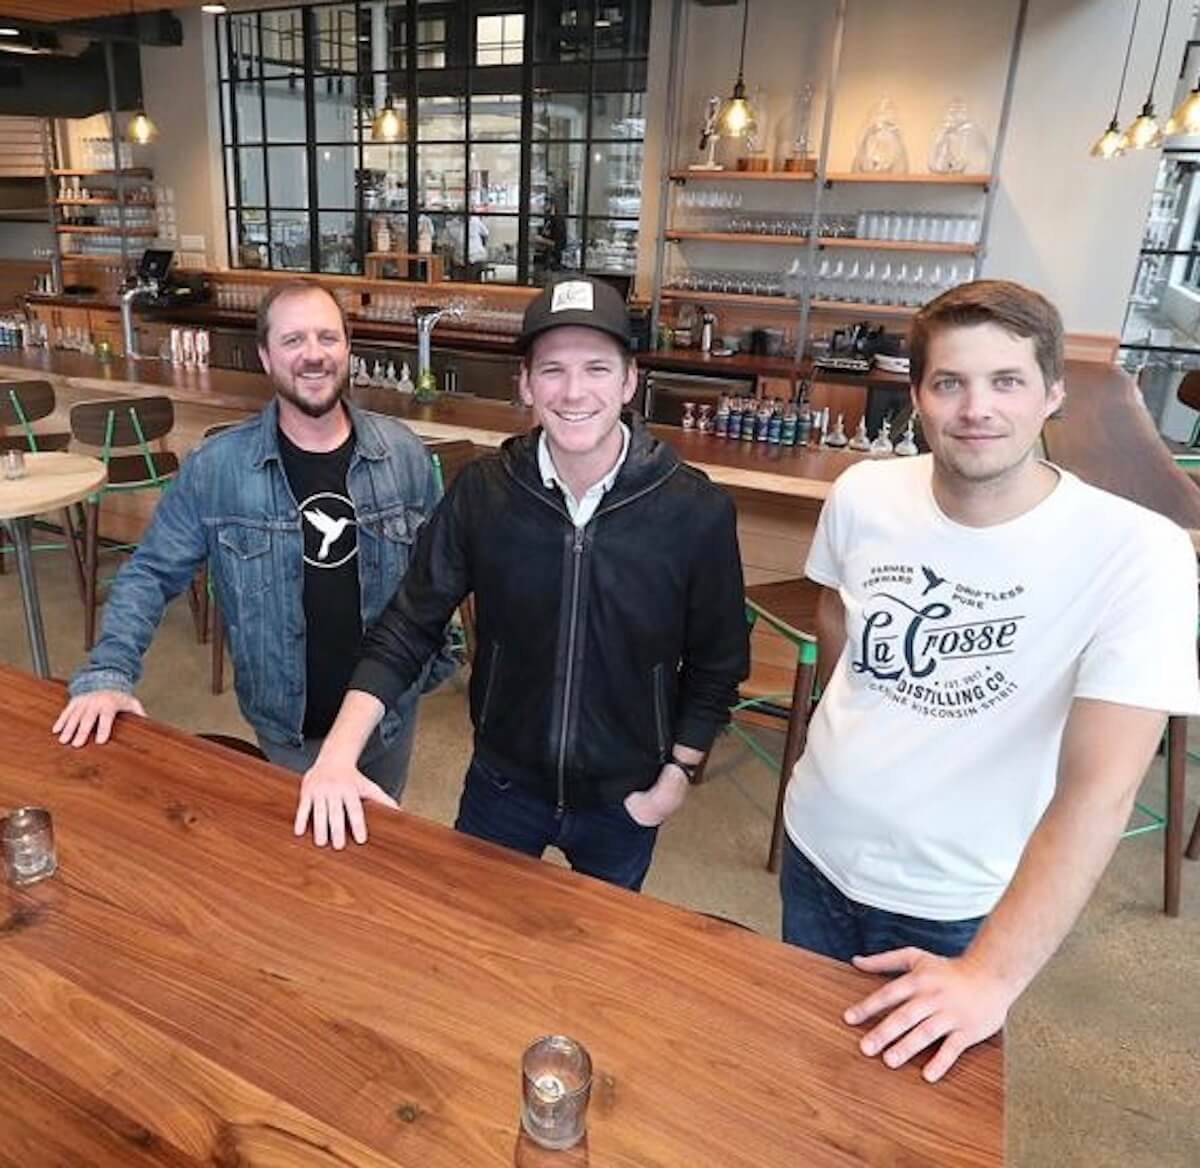 Chad Staehly, Nicholas Weber and Mitchell Parr co-founded La Crosse Distilling Co. in the fall of 2018. The company is now producing hand sanitizer to meet the demand due to the spread of COVID-19. (Photo provided by La Crosse Distilling Co.)